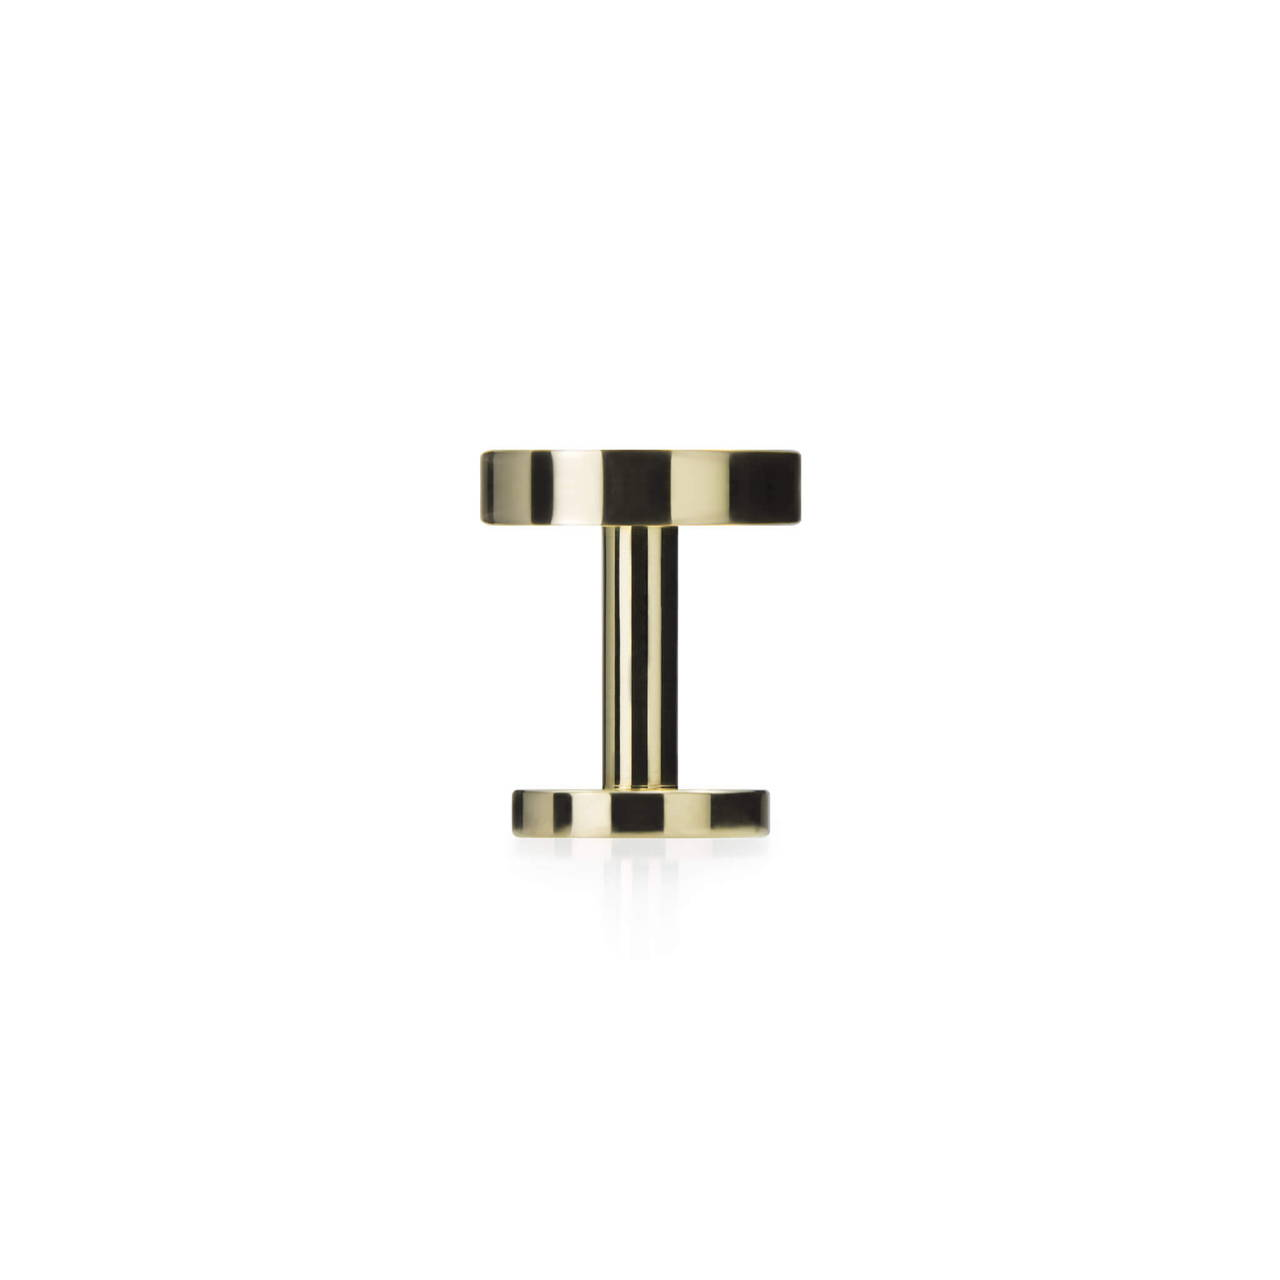 Polished Brass Cufflink